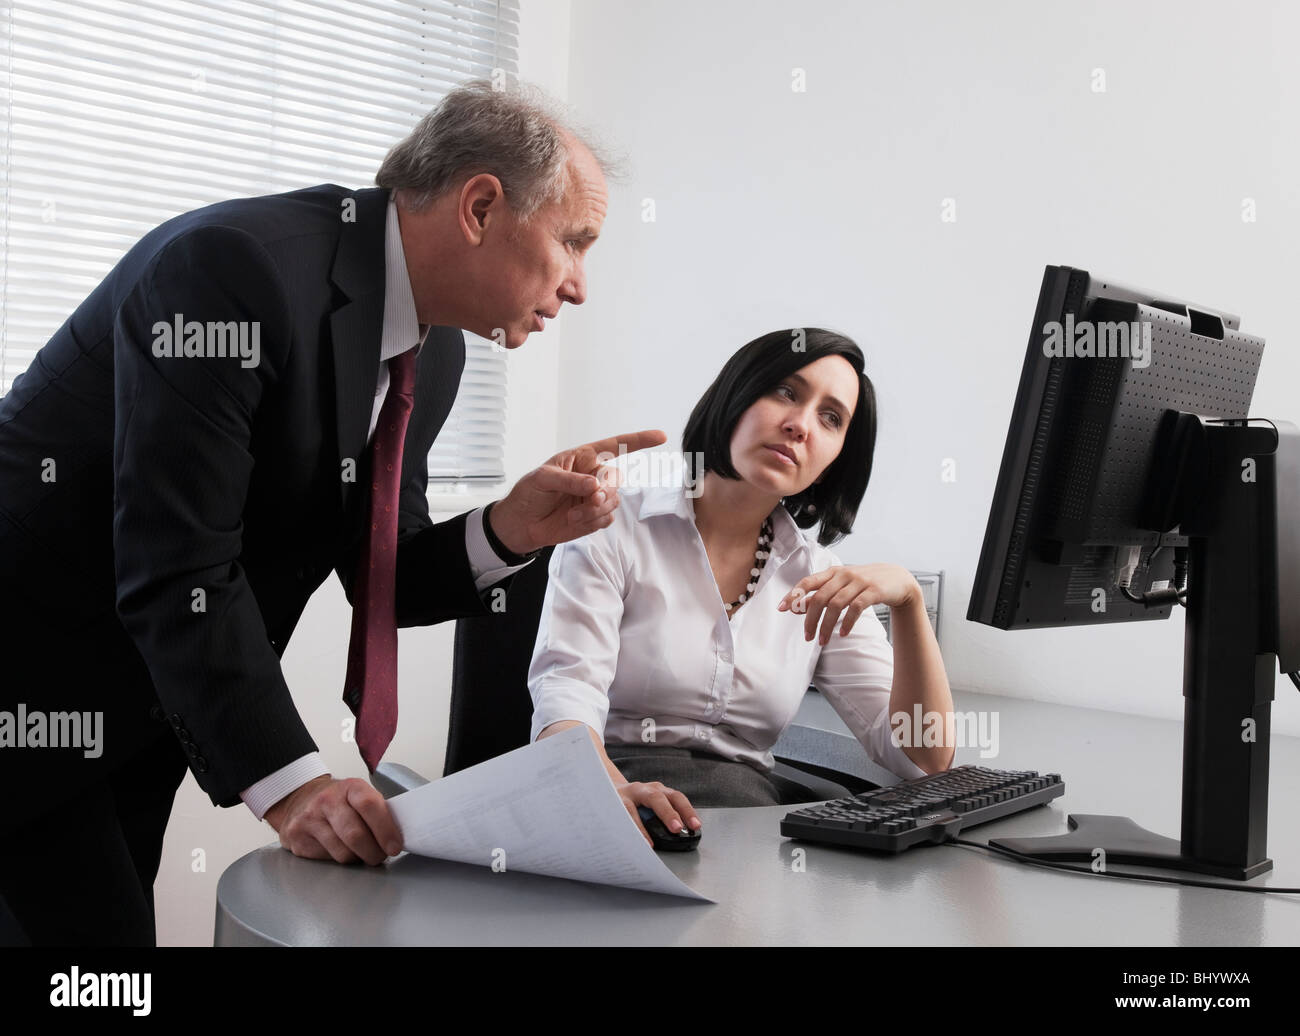 Male and female colleagues collaborating on a project - Stock Image